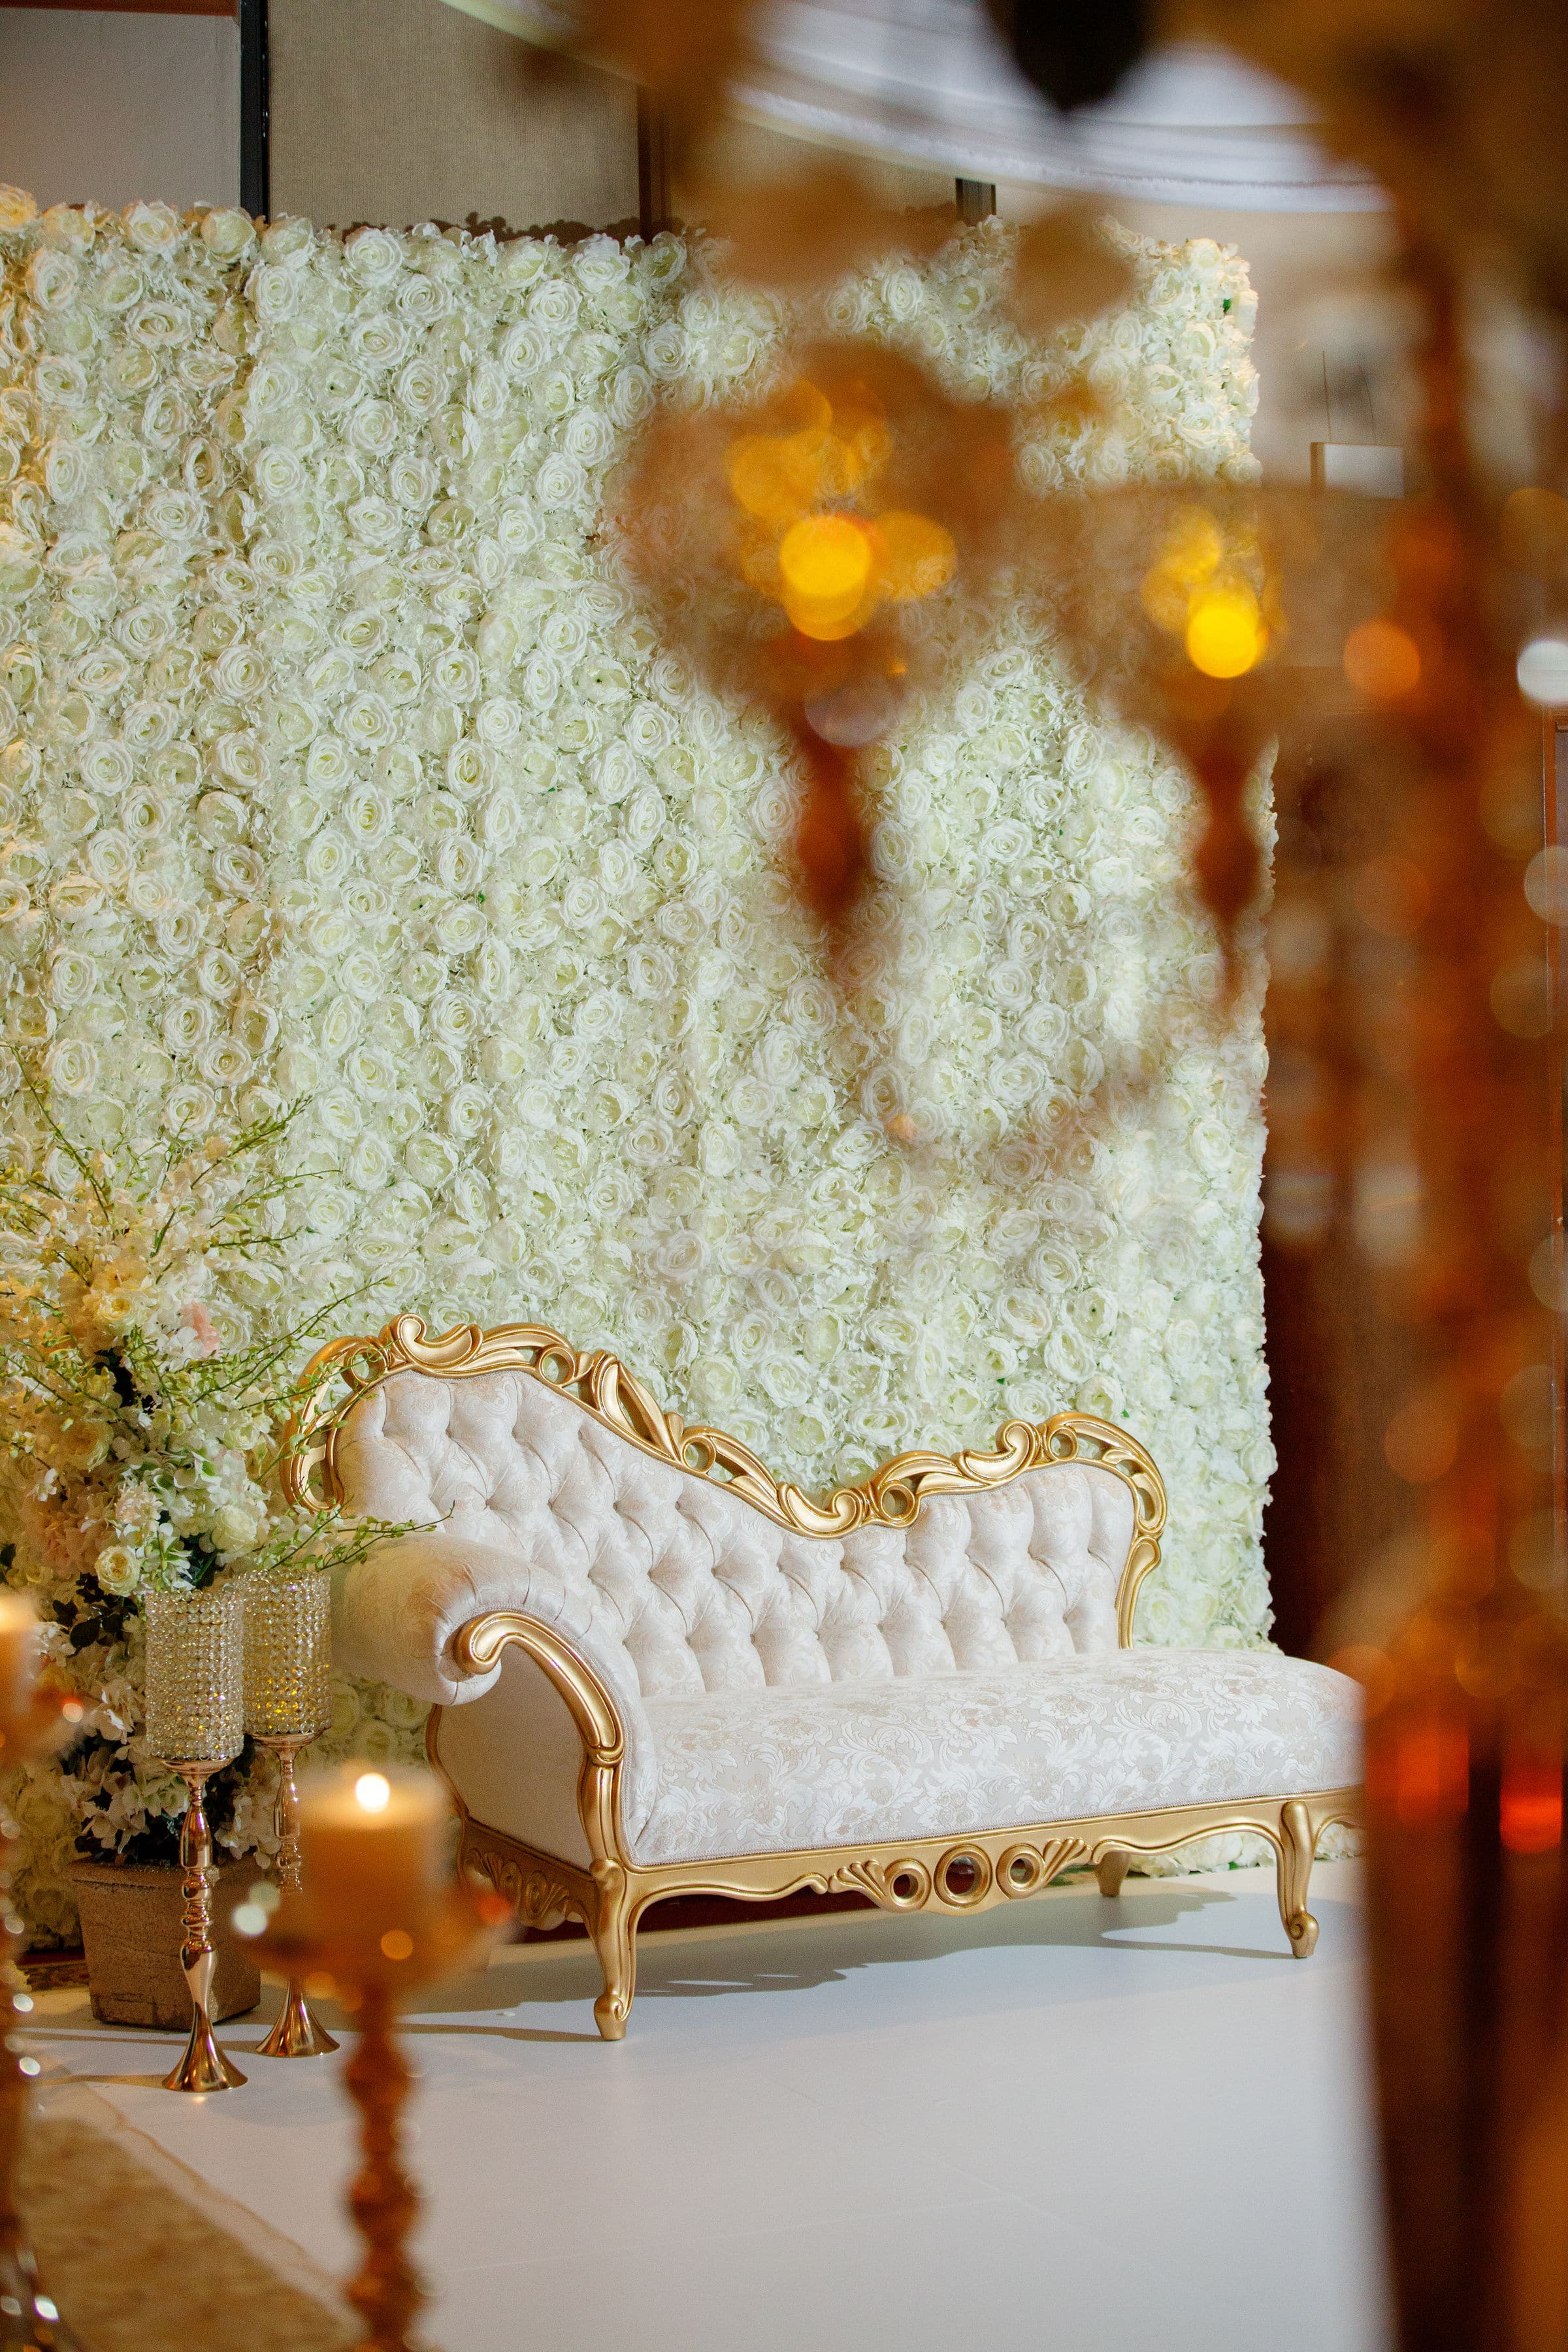 White and Gold Chaise Loung in front of flower wall